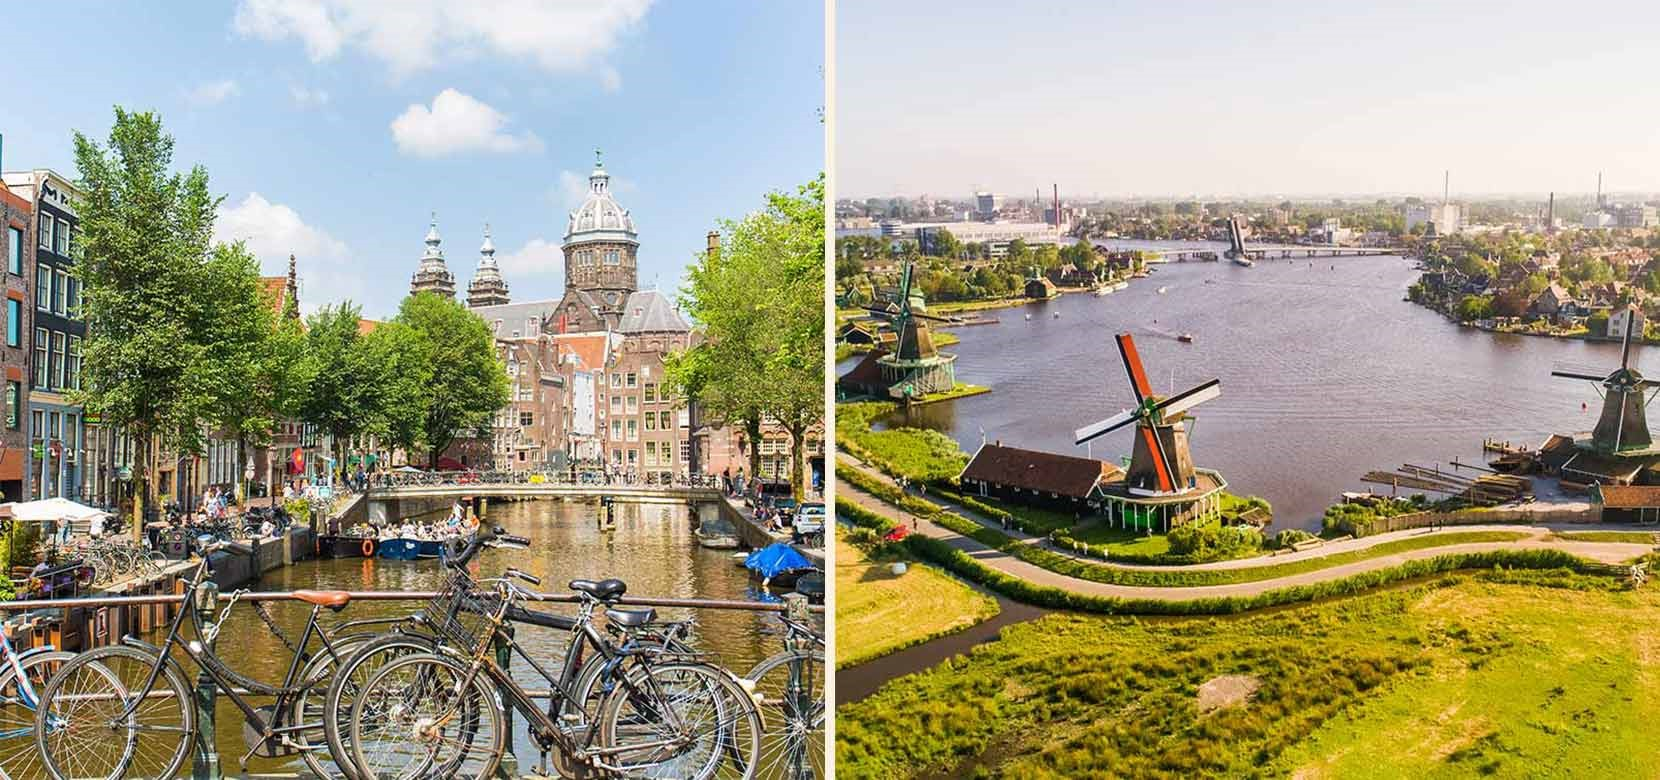 Amsterdam City Tour + Countryside & Windmills tour + gratis rondvaart